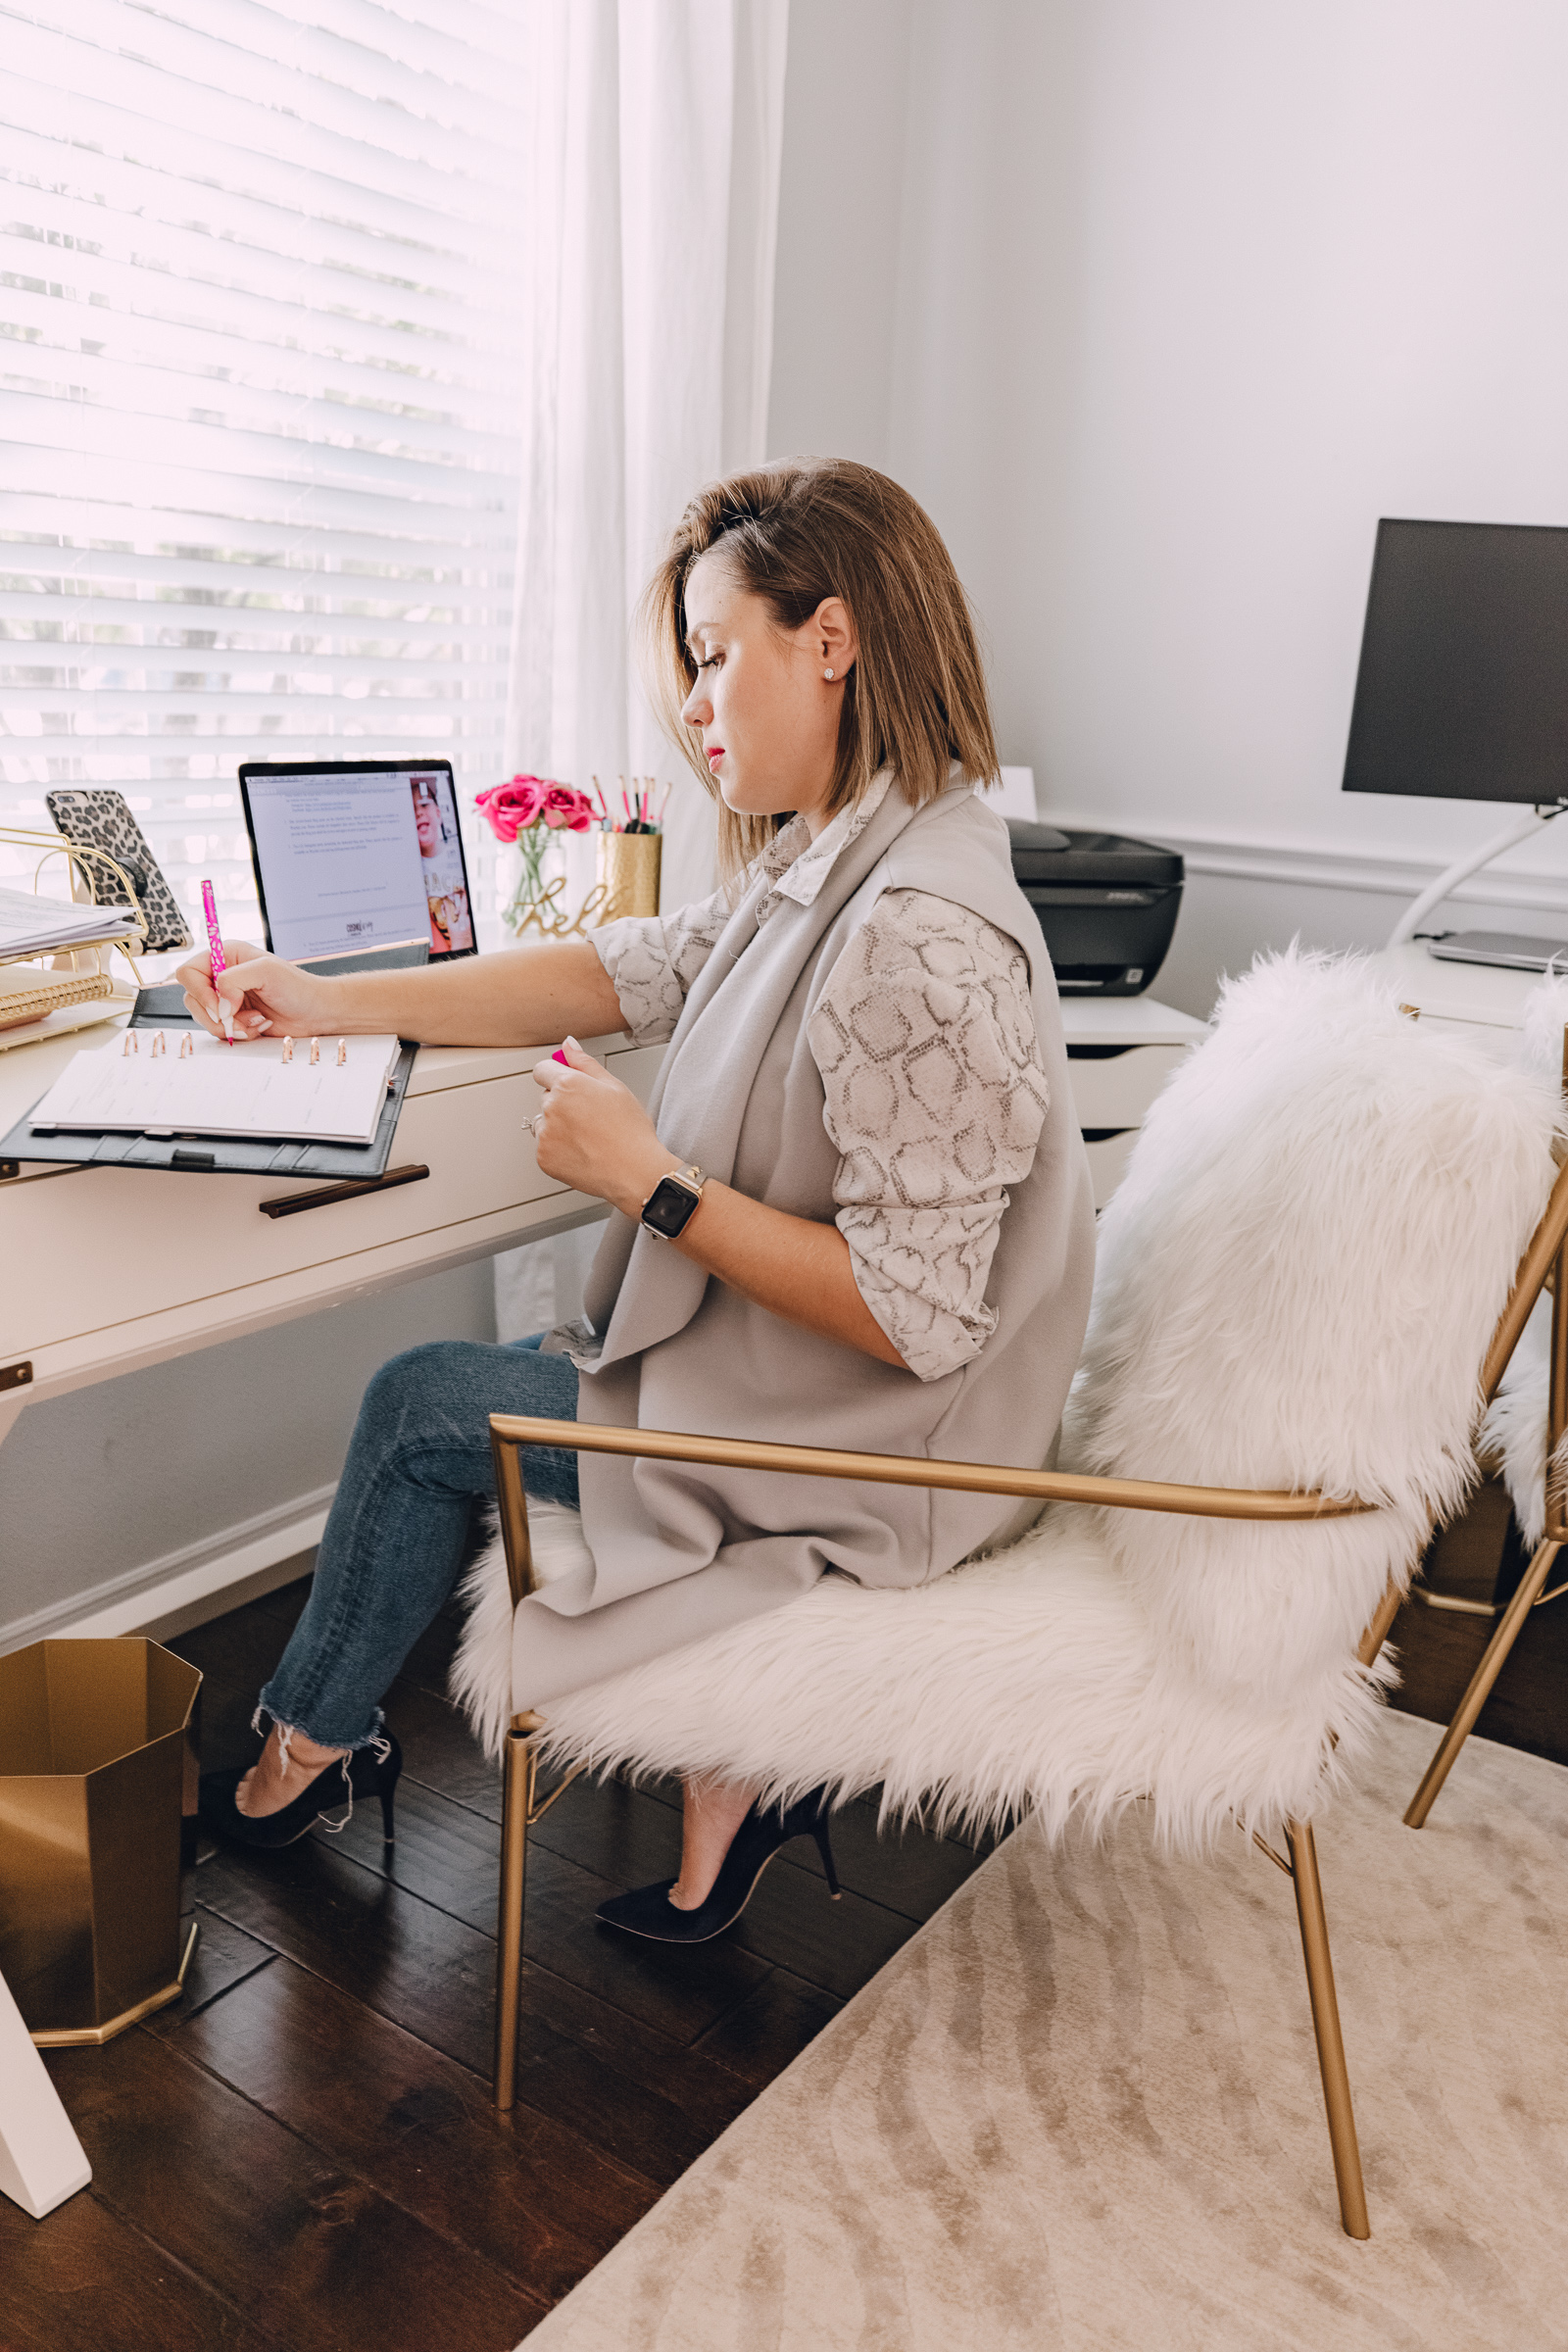 Houston blogger Elly Brown shares her shared office decor and office faux fur chair from CosmoLiving